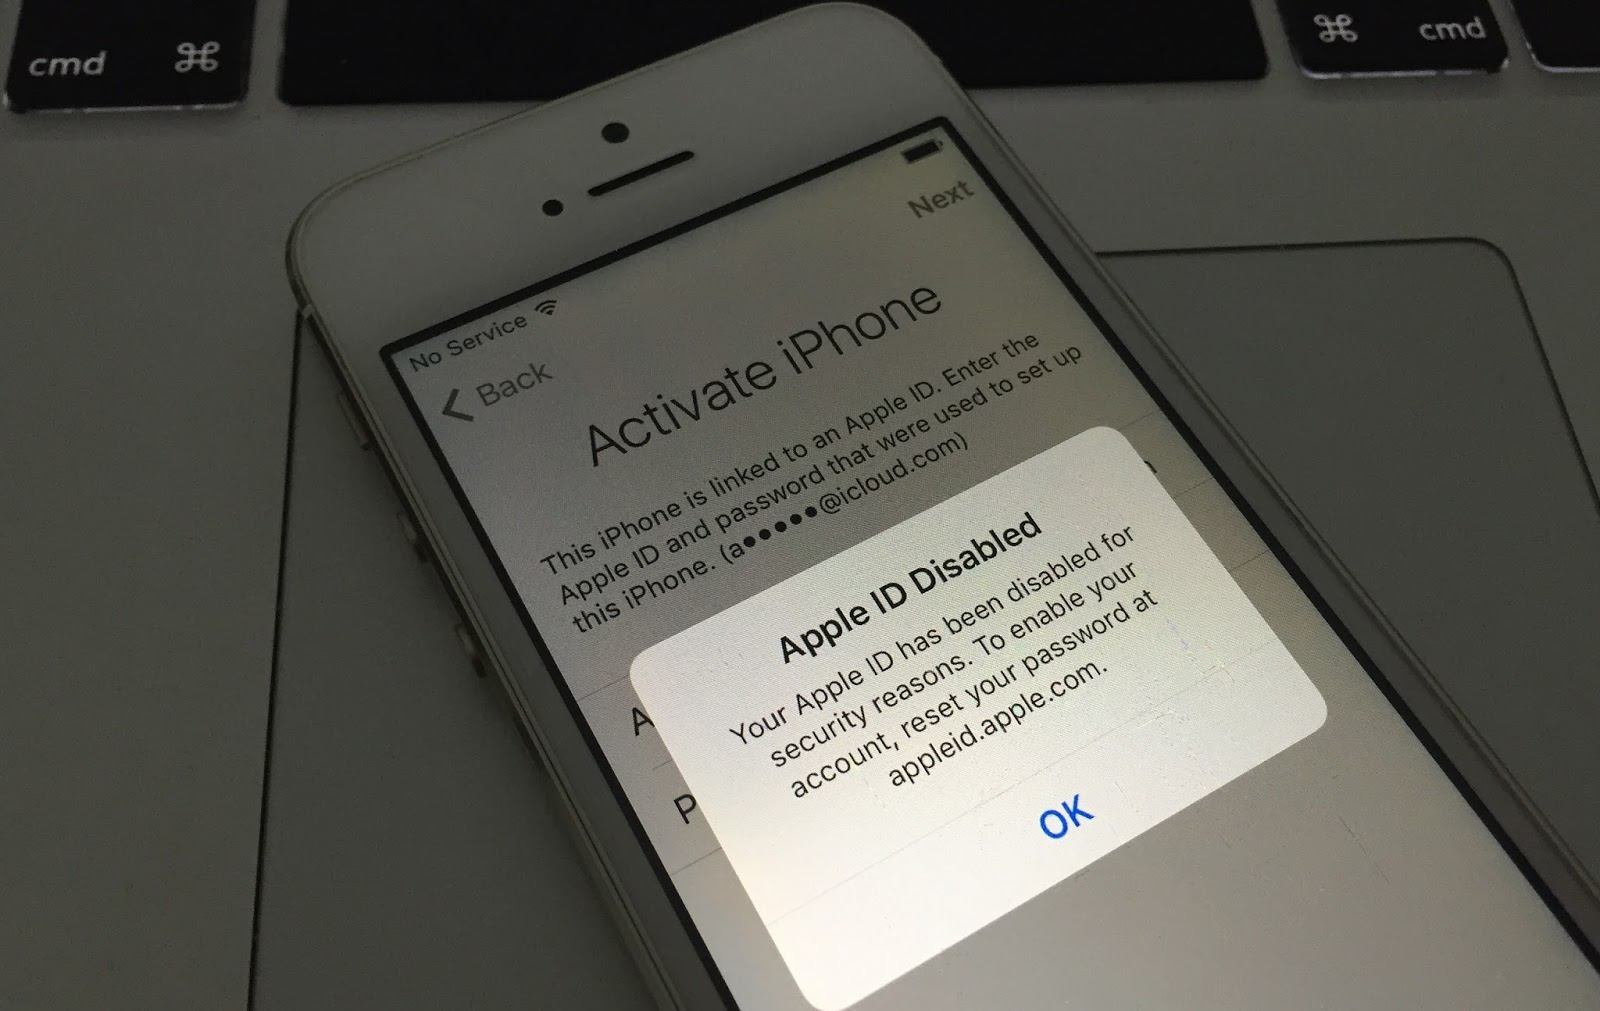 the fingerprint apple account locked due to security reasons the